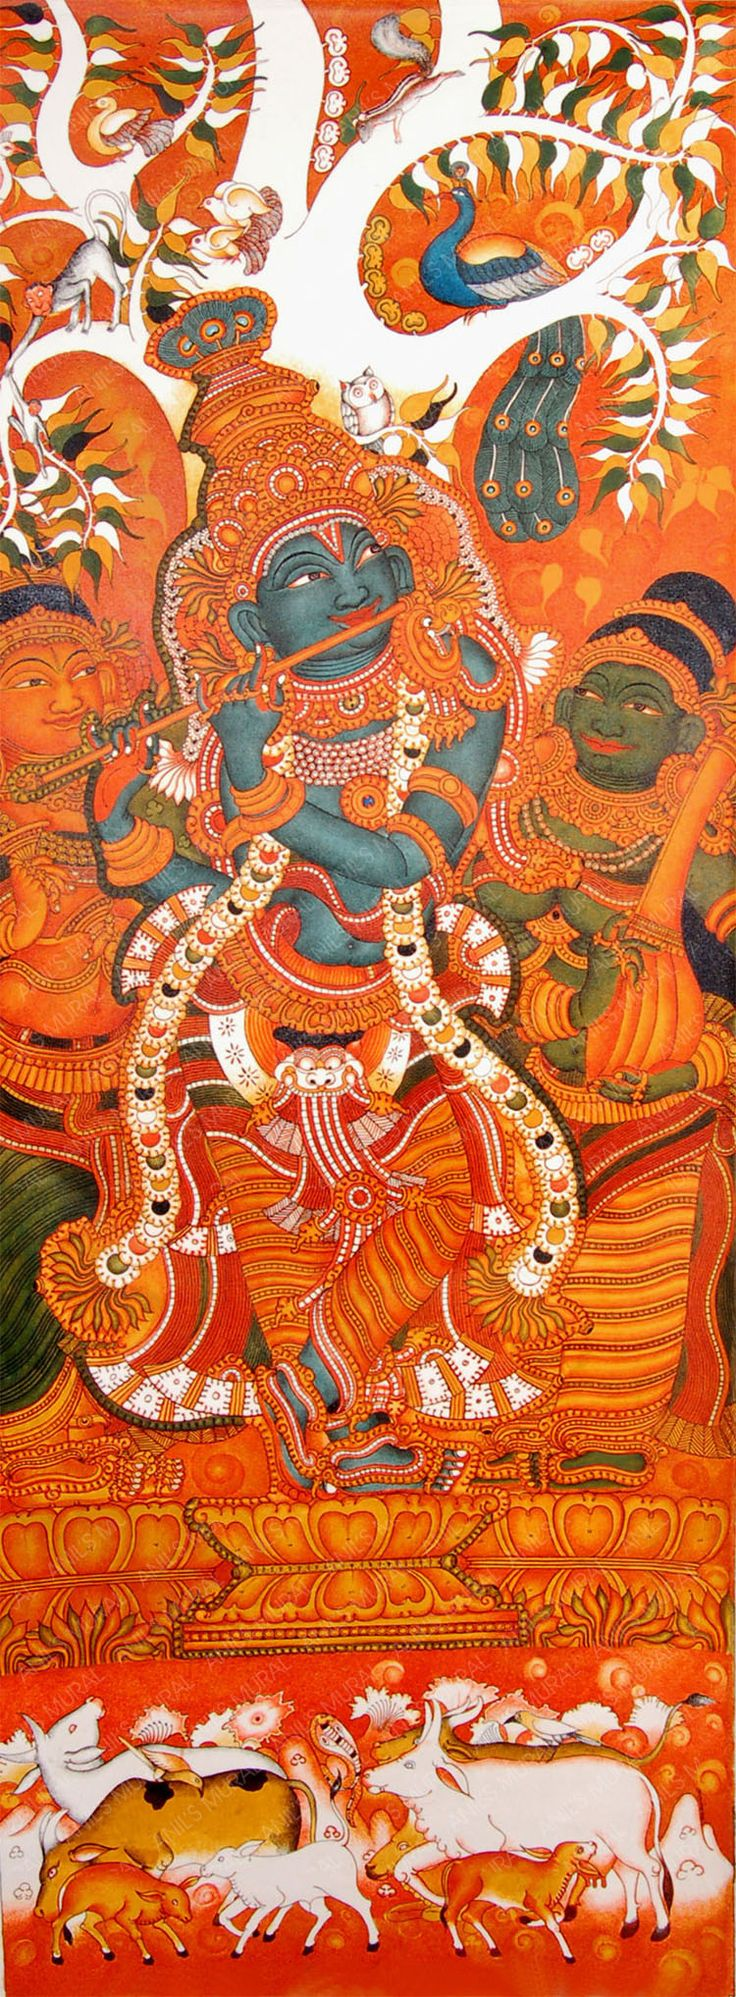 853 best kerala mural art images on pinterest for Asha mural painting guruvayur